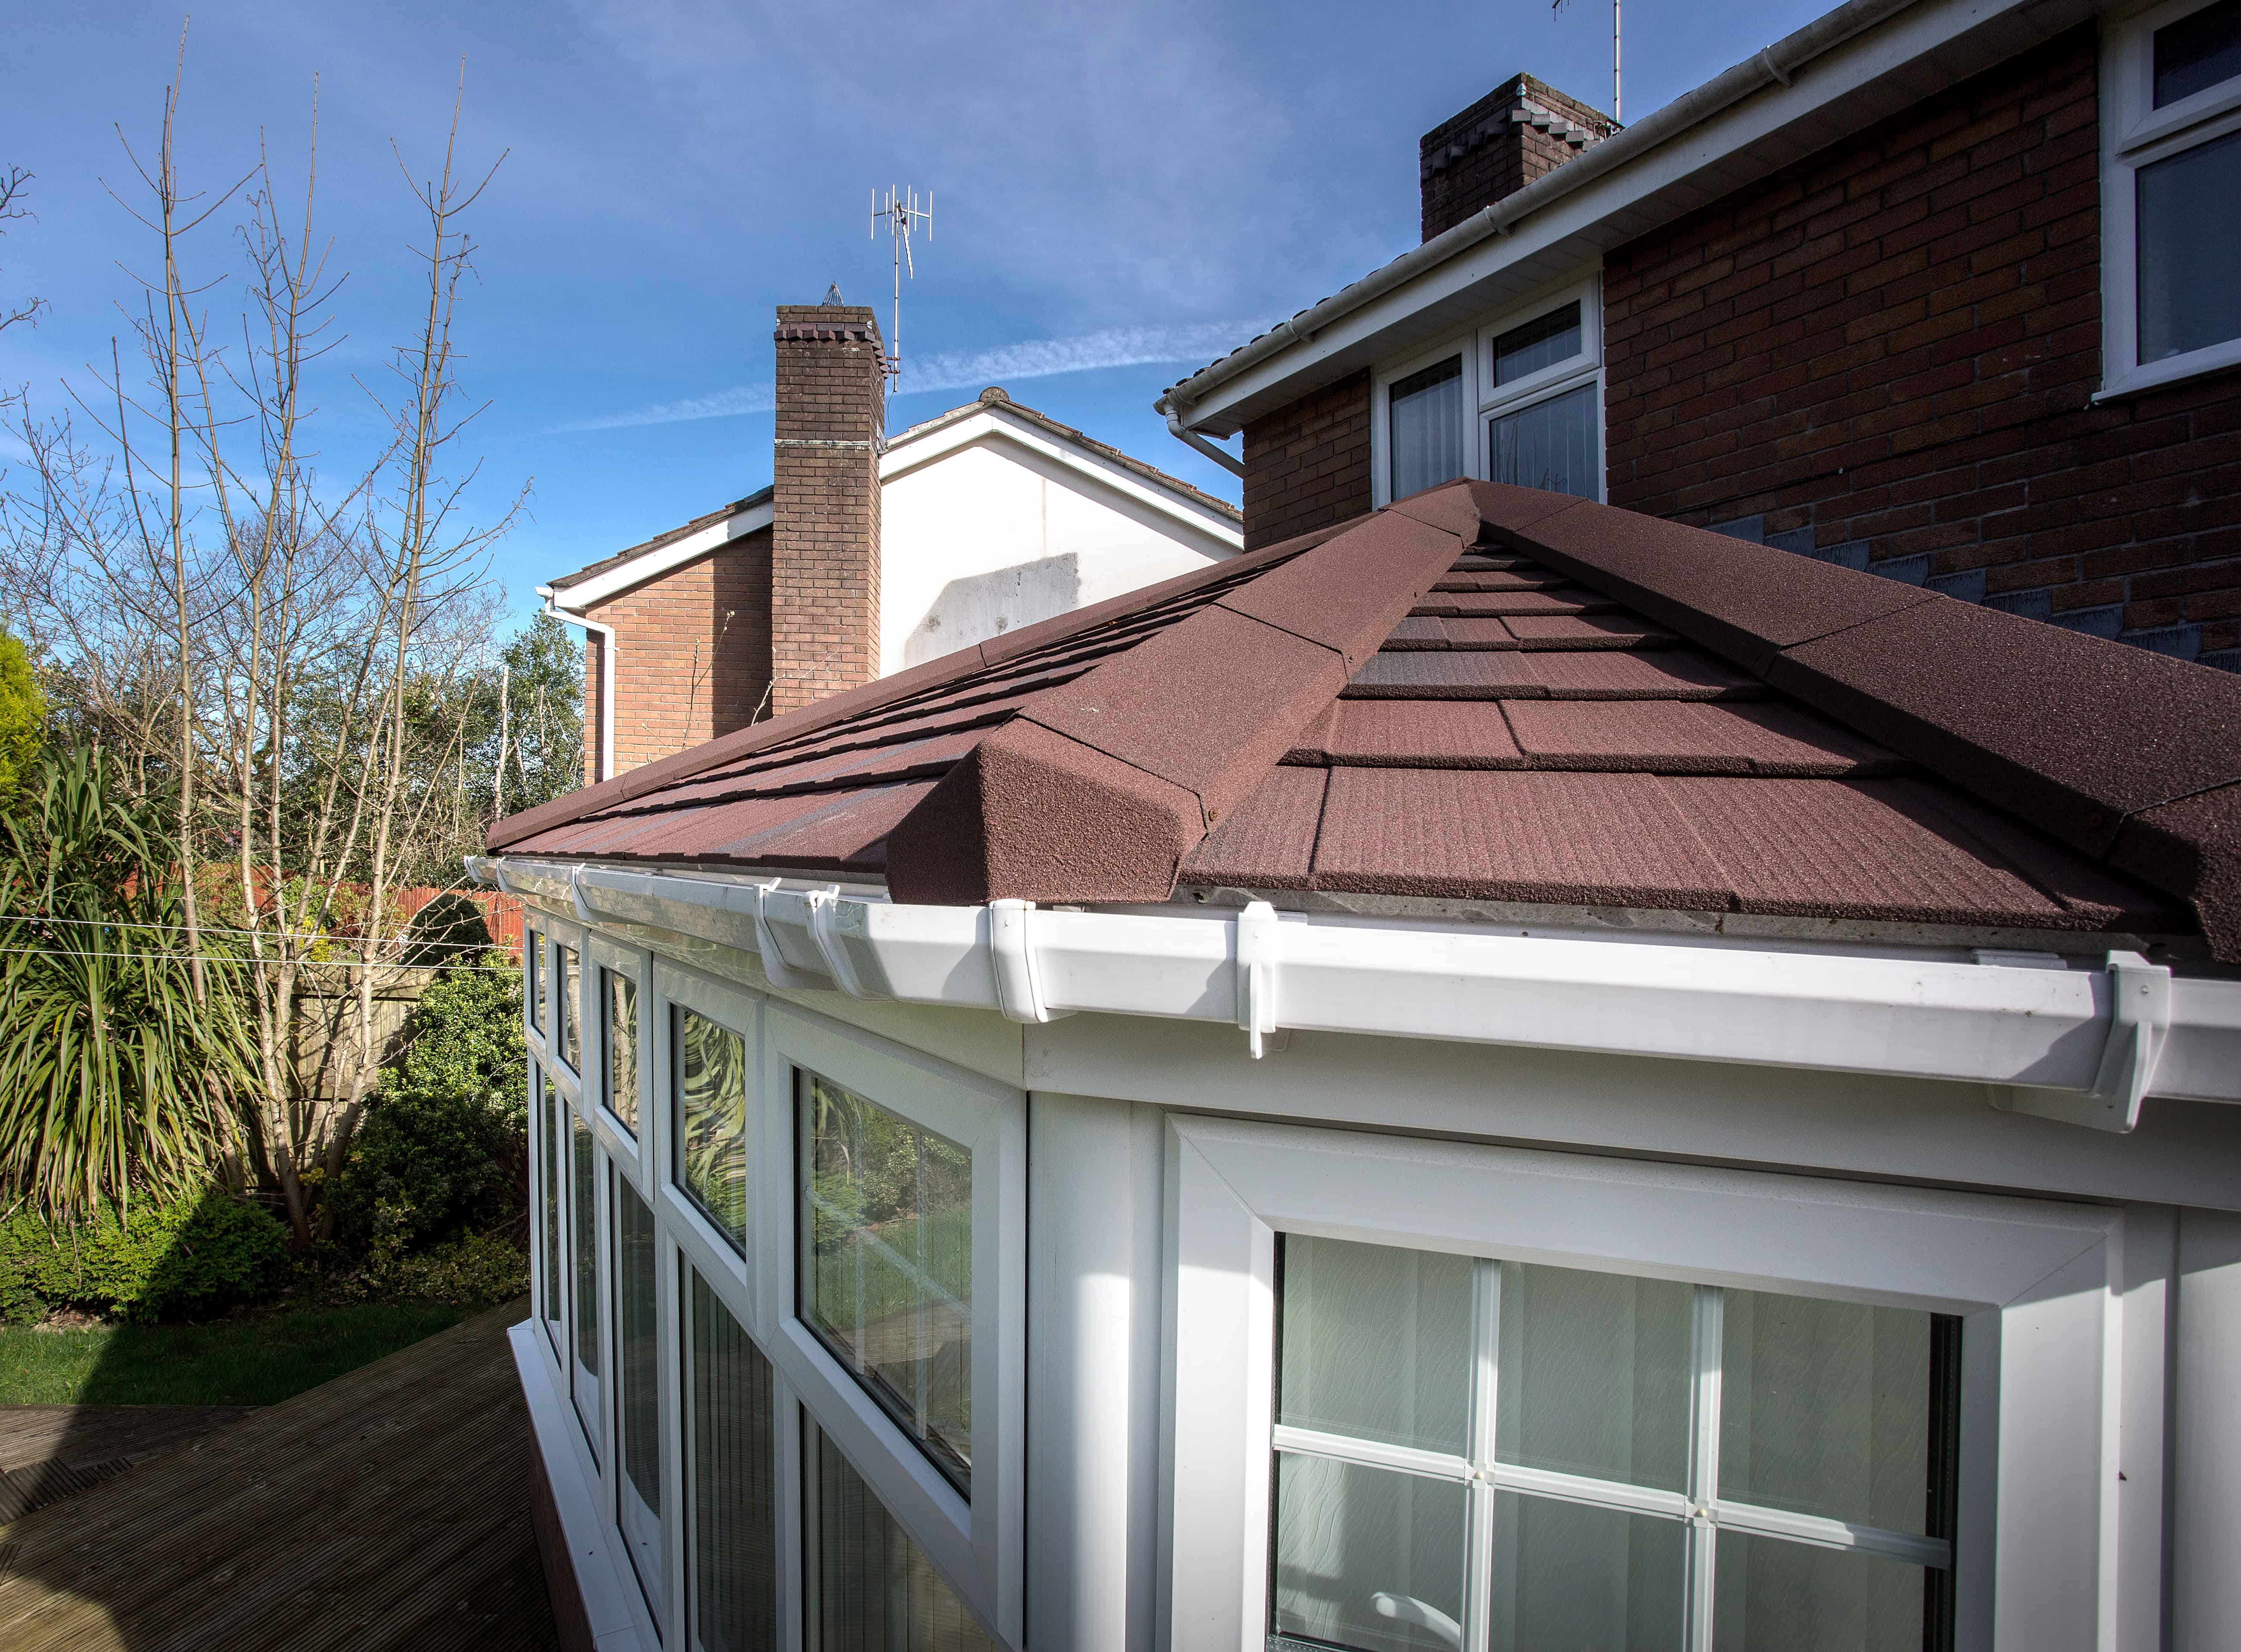 Wide Bay Victorian Conservatory Roof Transformation Leka